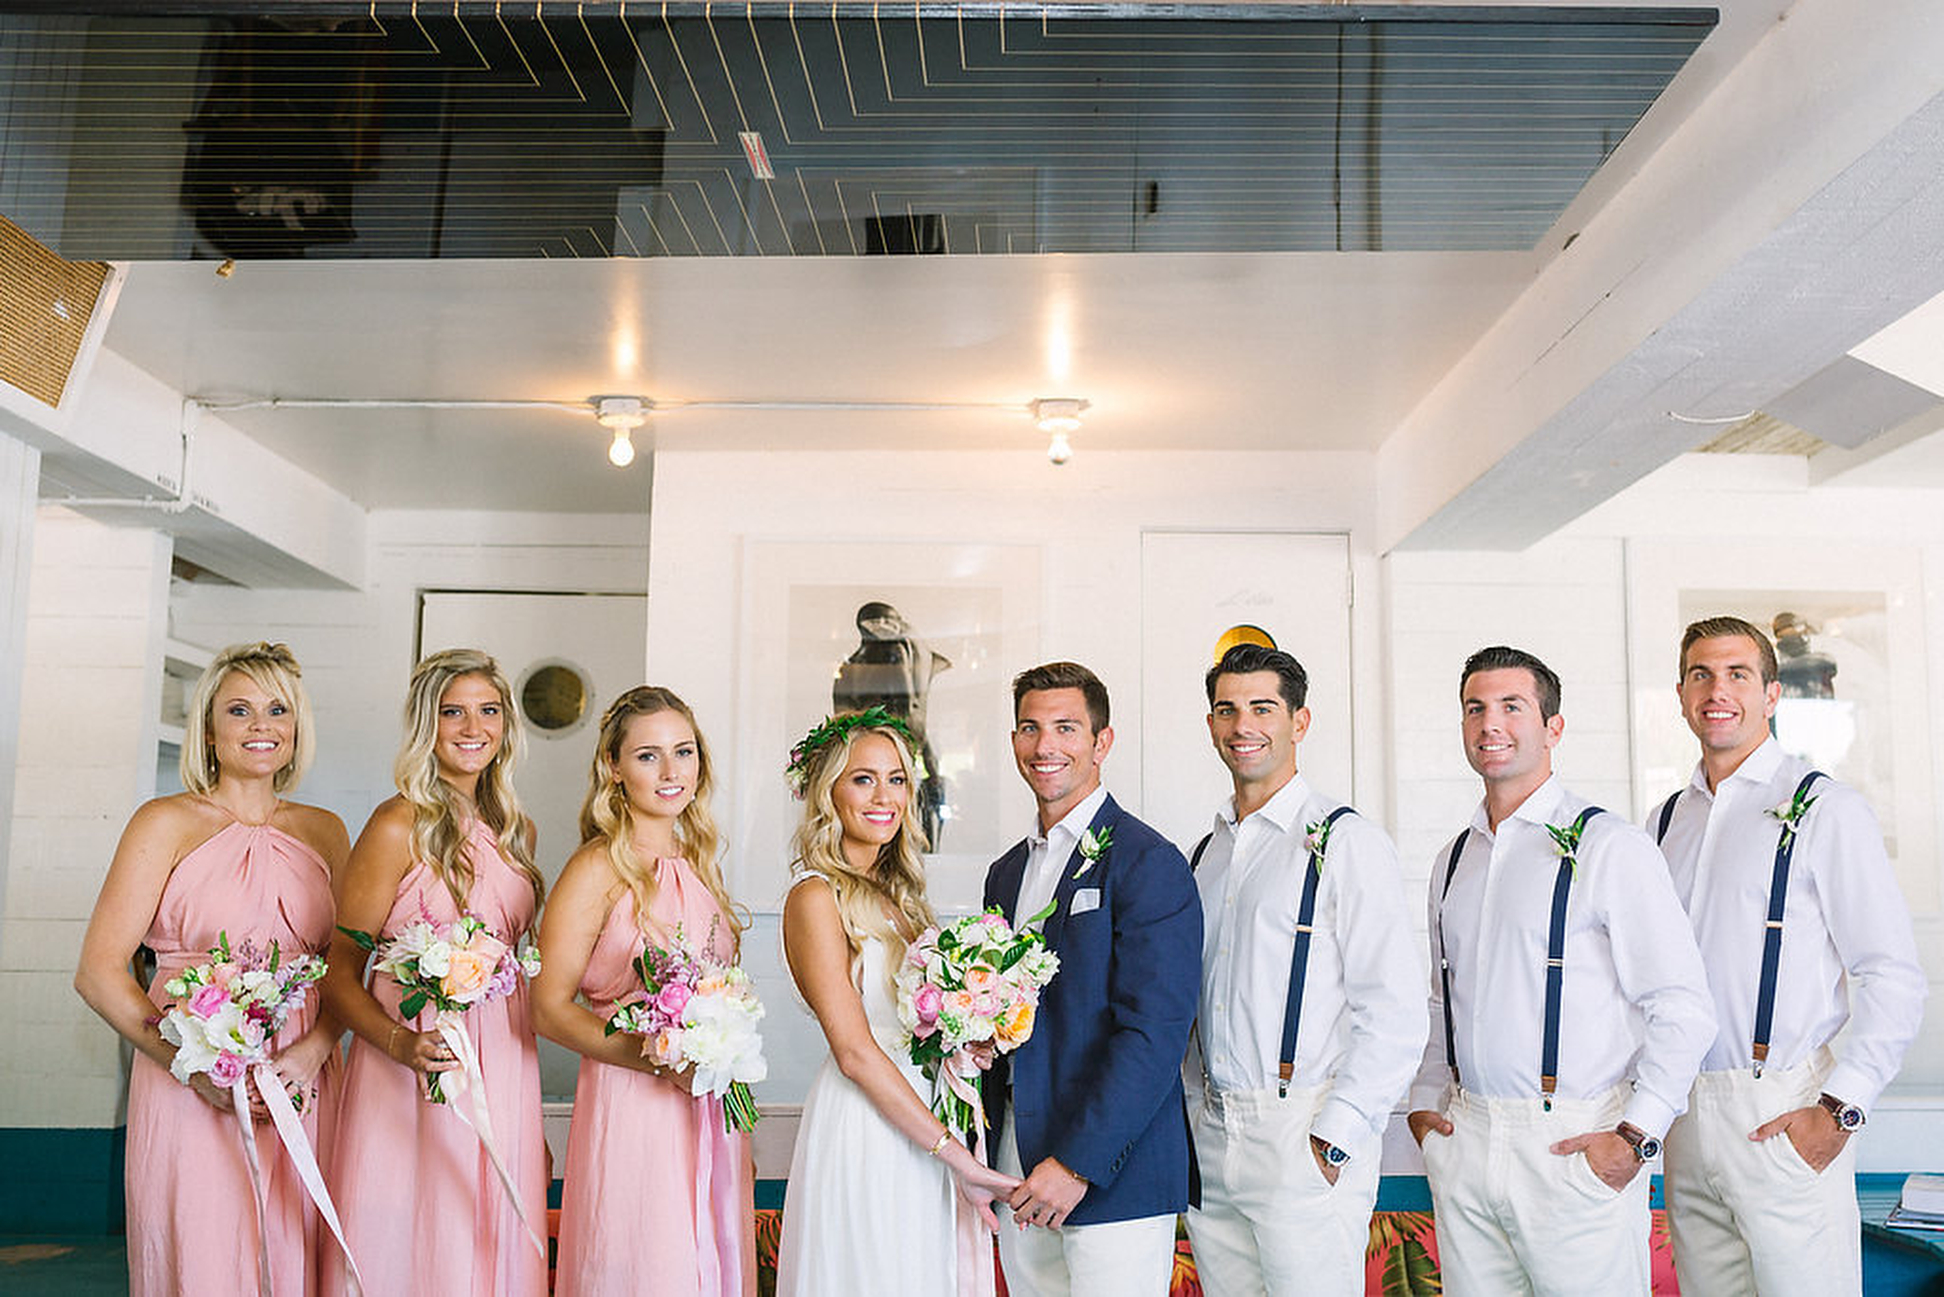 THE SURF LODGE WEDDING_BETSI EWING STUDIO_063.JPG